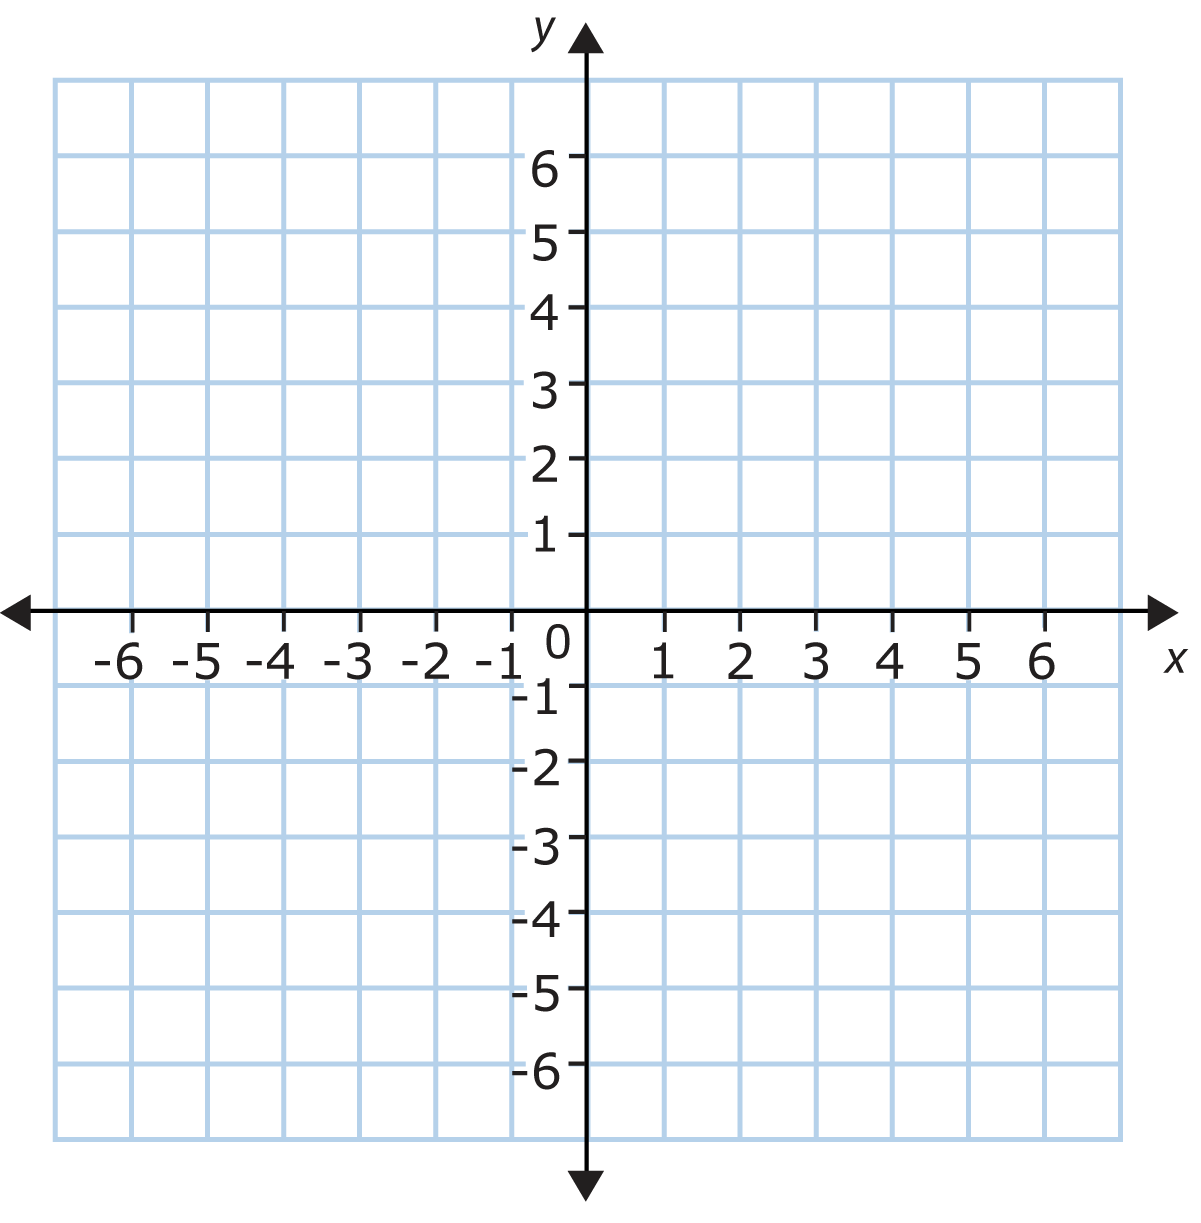 hight resolution of Interactive coordinate plane for smartboards.   Coordinate plane